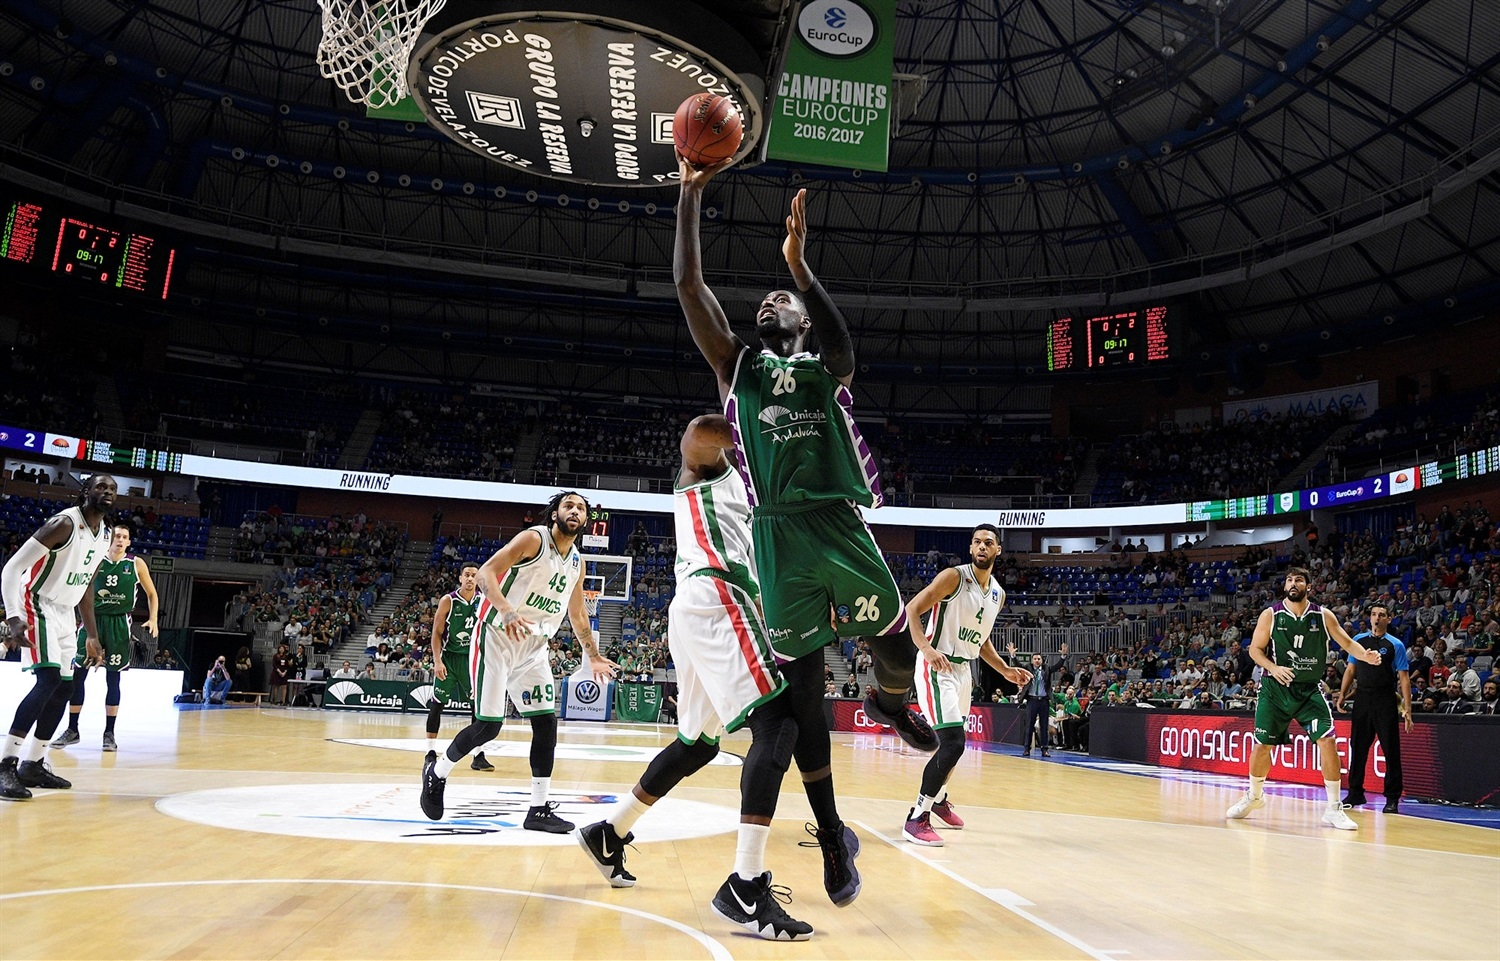 Mathias Lessort - Unicaja Malaga (photo Unicaja - Mariano Pozo) - EC18